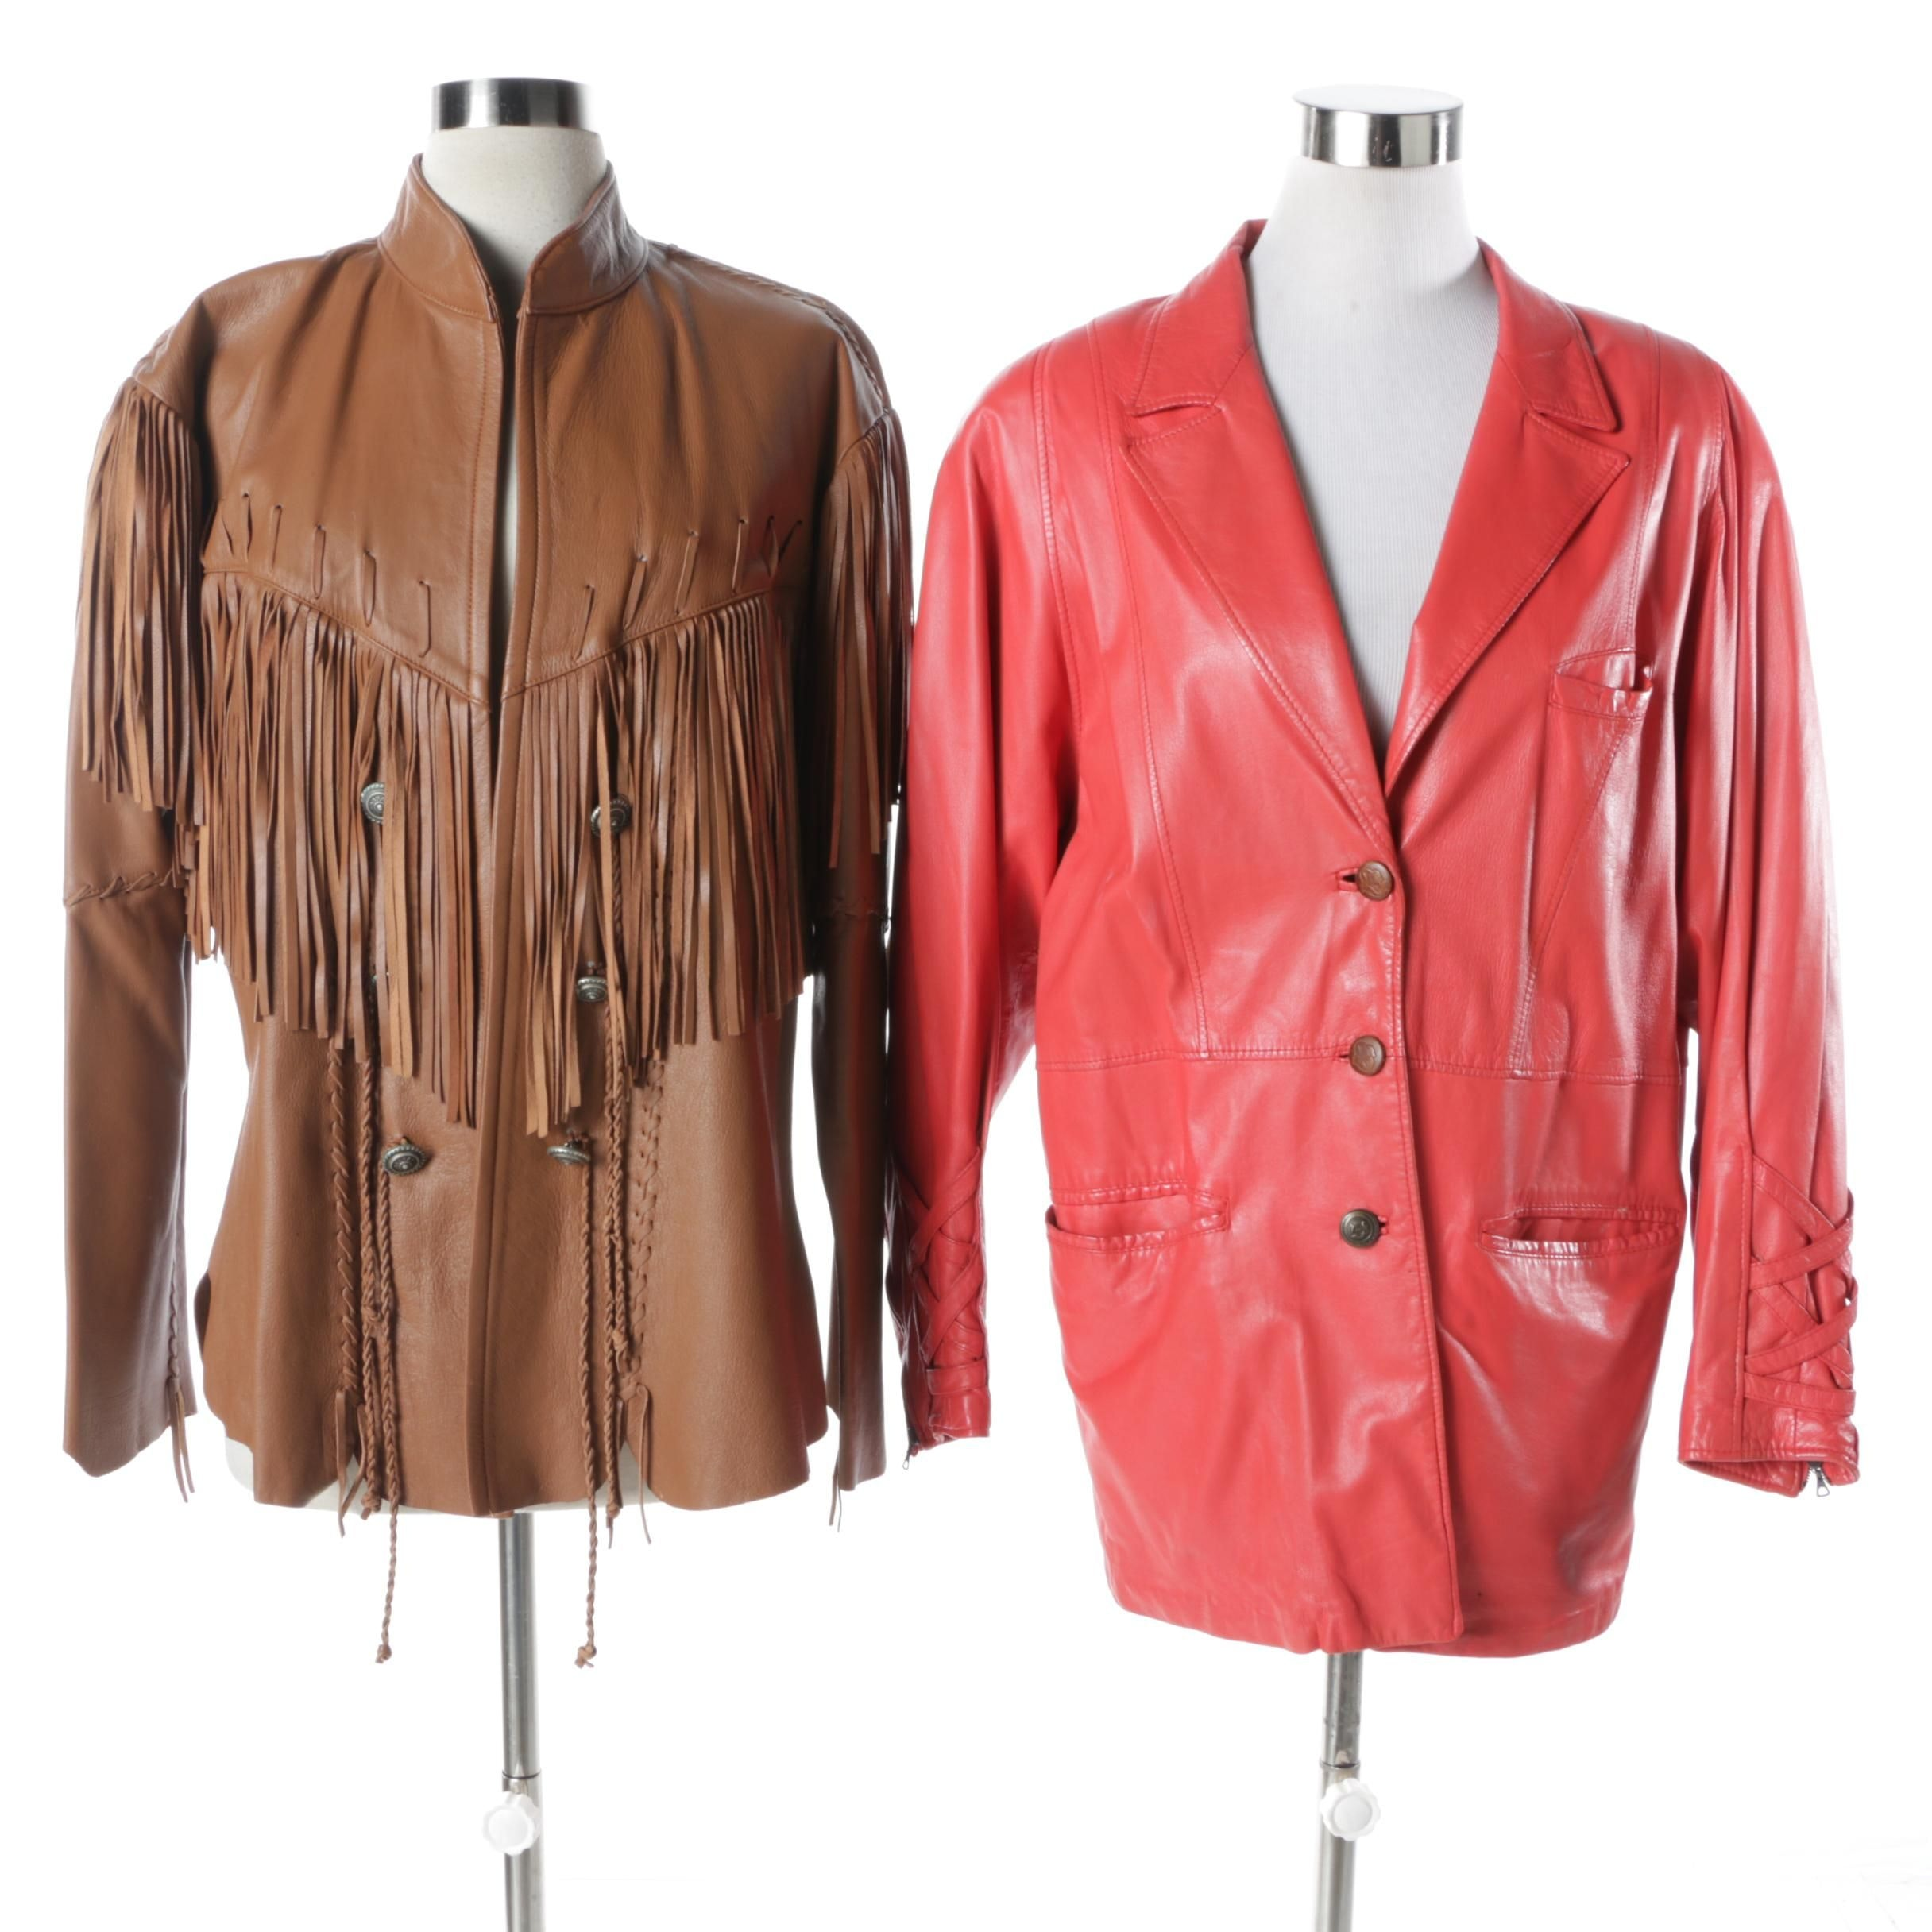 Women's Leather Jackets Including Breco's